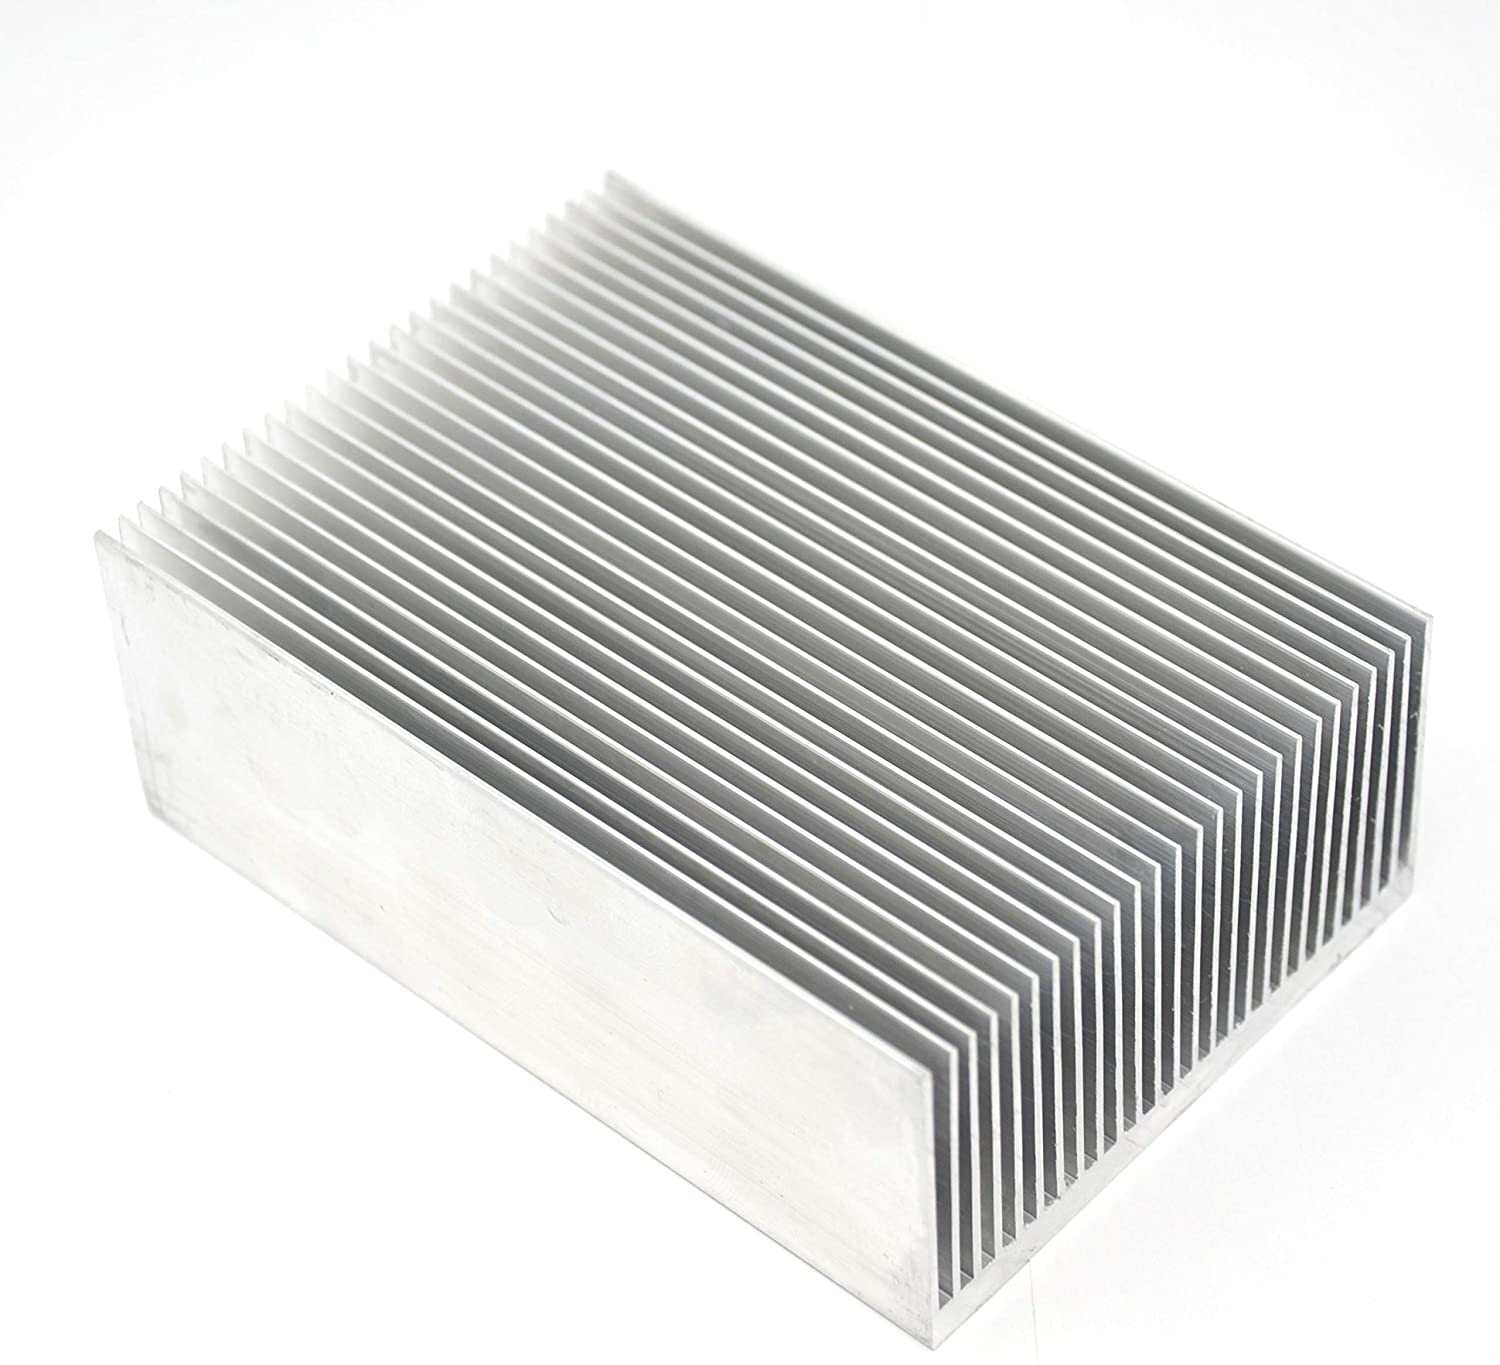 Befenybay 1pcs Aluminum Heat Sink Heatsink Module,Cooler Cooling for High Power Transistor Semiconductor Devices with 26 pcs fins 3.93 (L) x 2.71 (W) x 1.41 (H) inch/100mm(L) x 69mm(W) x 36mm(H)